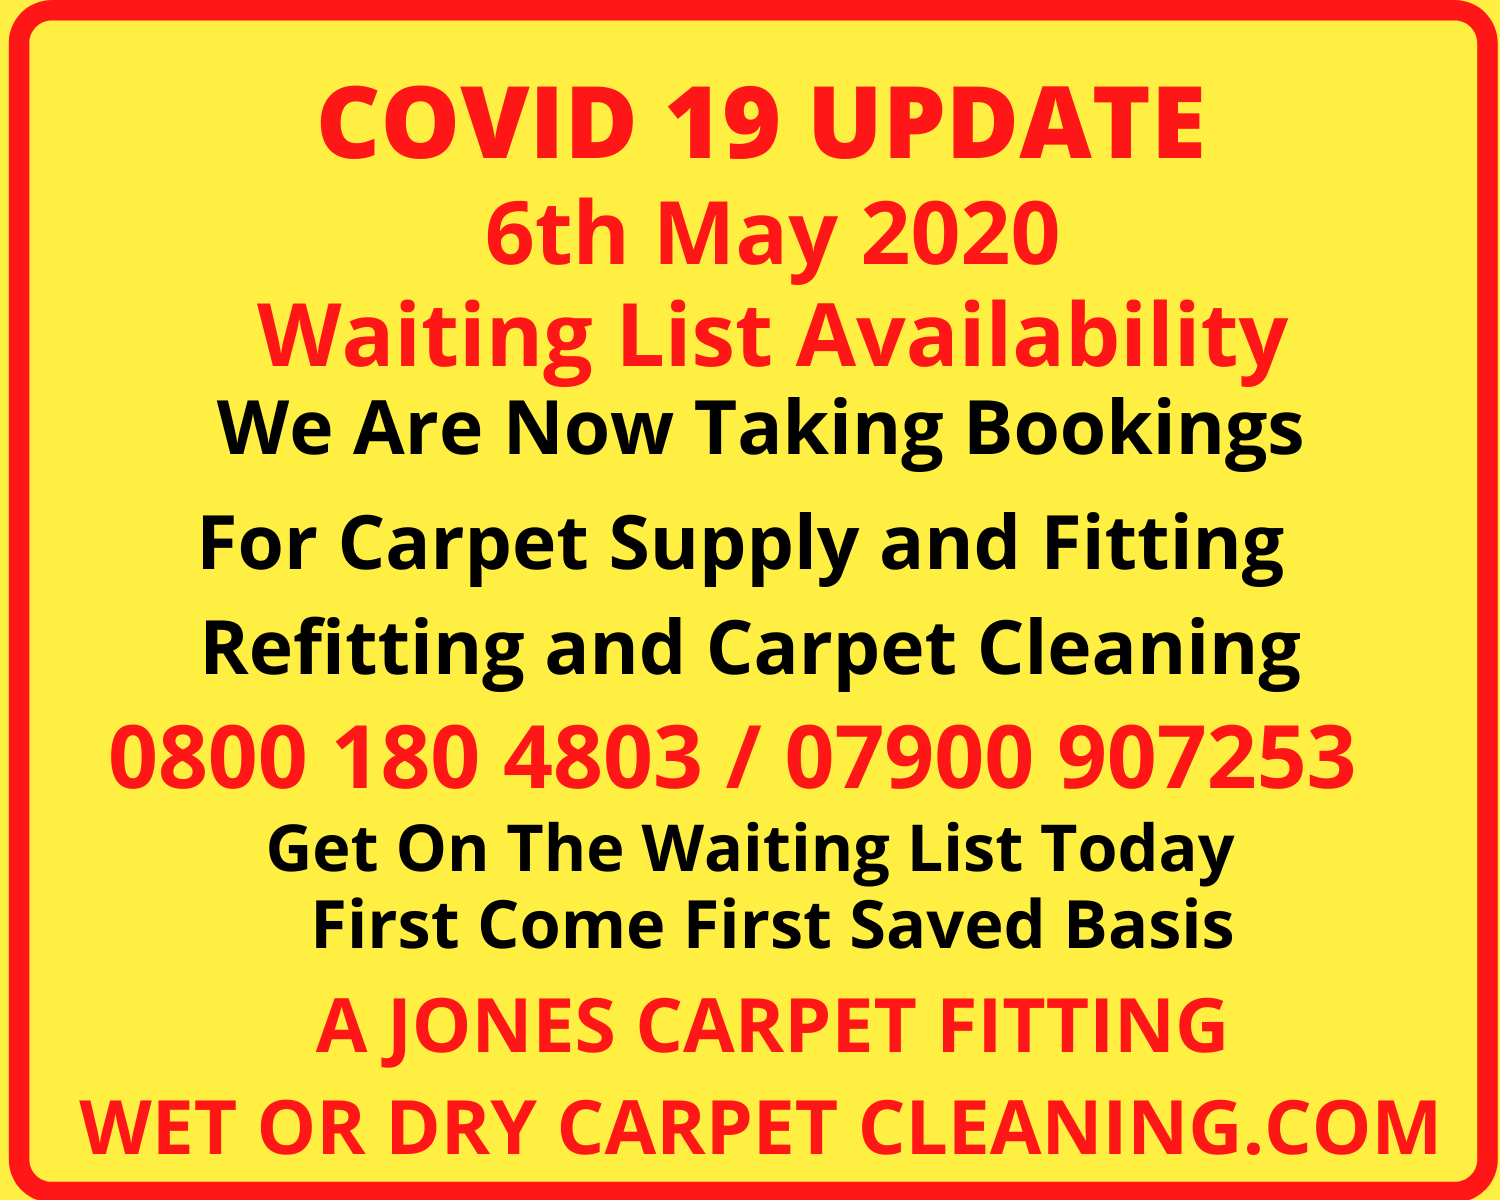 Carpet Fitting and Cleaning